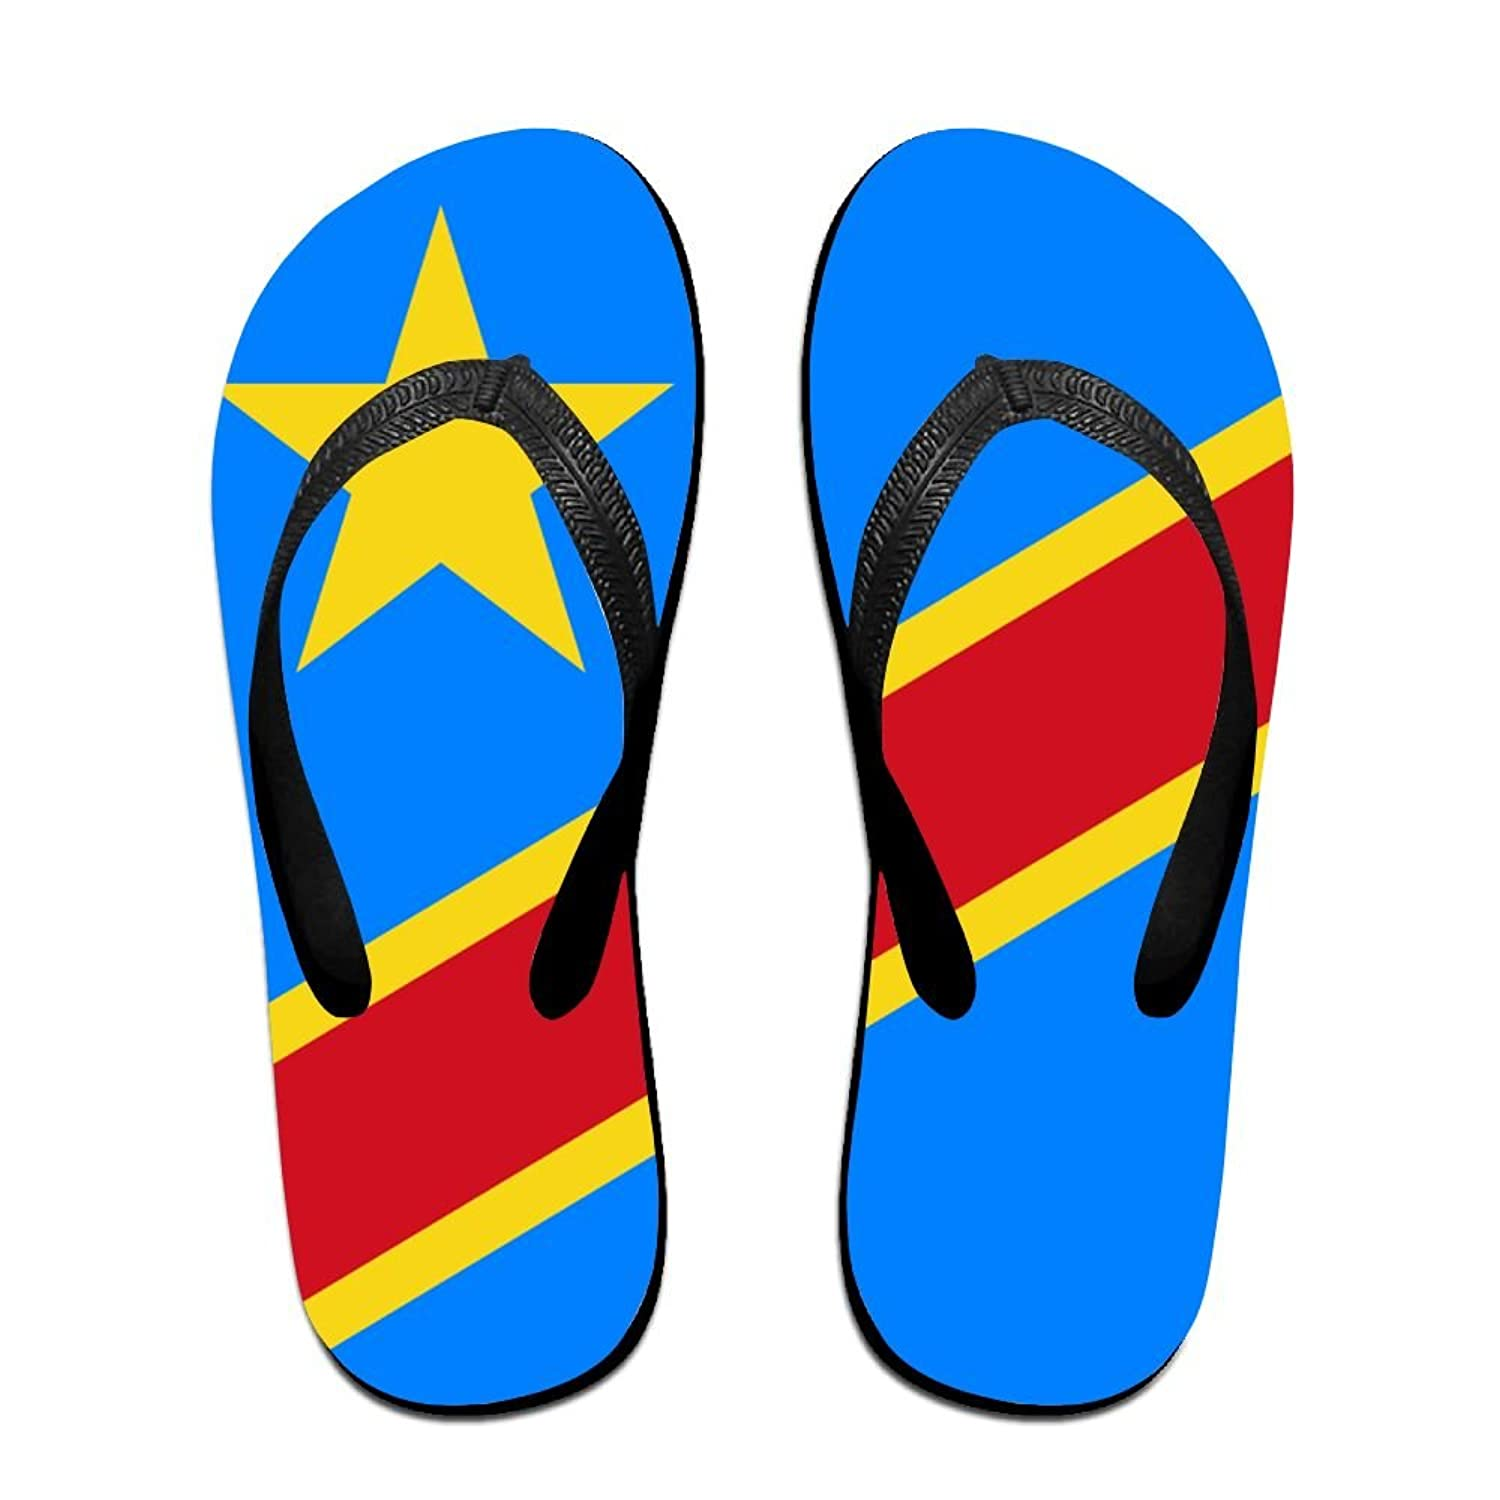 Flag Of The Republic Of The Congo Cozy Flip Flops For Children Adults Men And Women Beach Sandals Pool Party Slippers